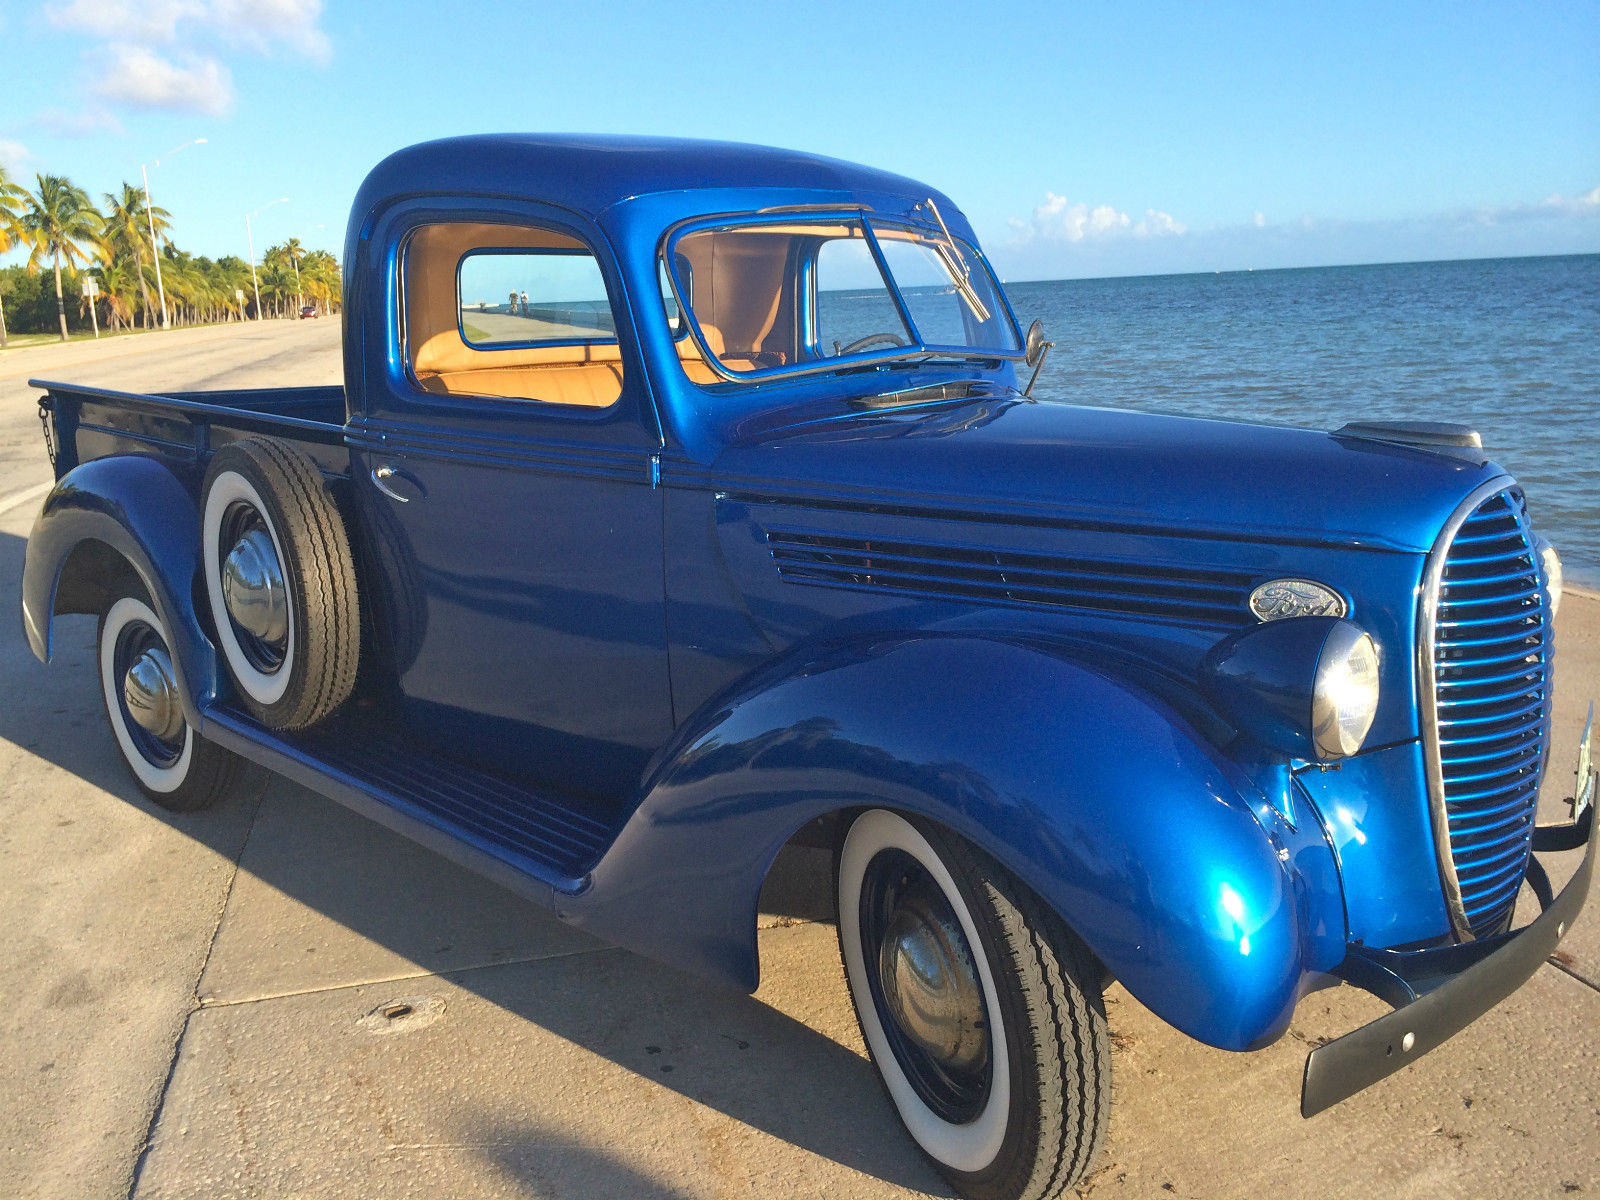 1938 ford pickup model 85 ford electric blue original engine with low mileage for sale in key. Black Bedroom Furniture Sets. Home Design Ideas